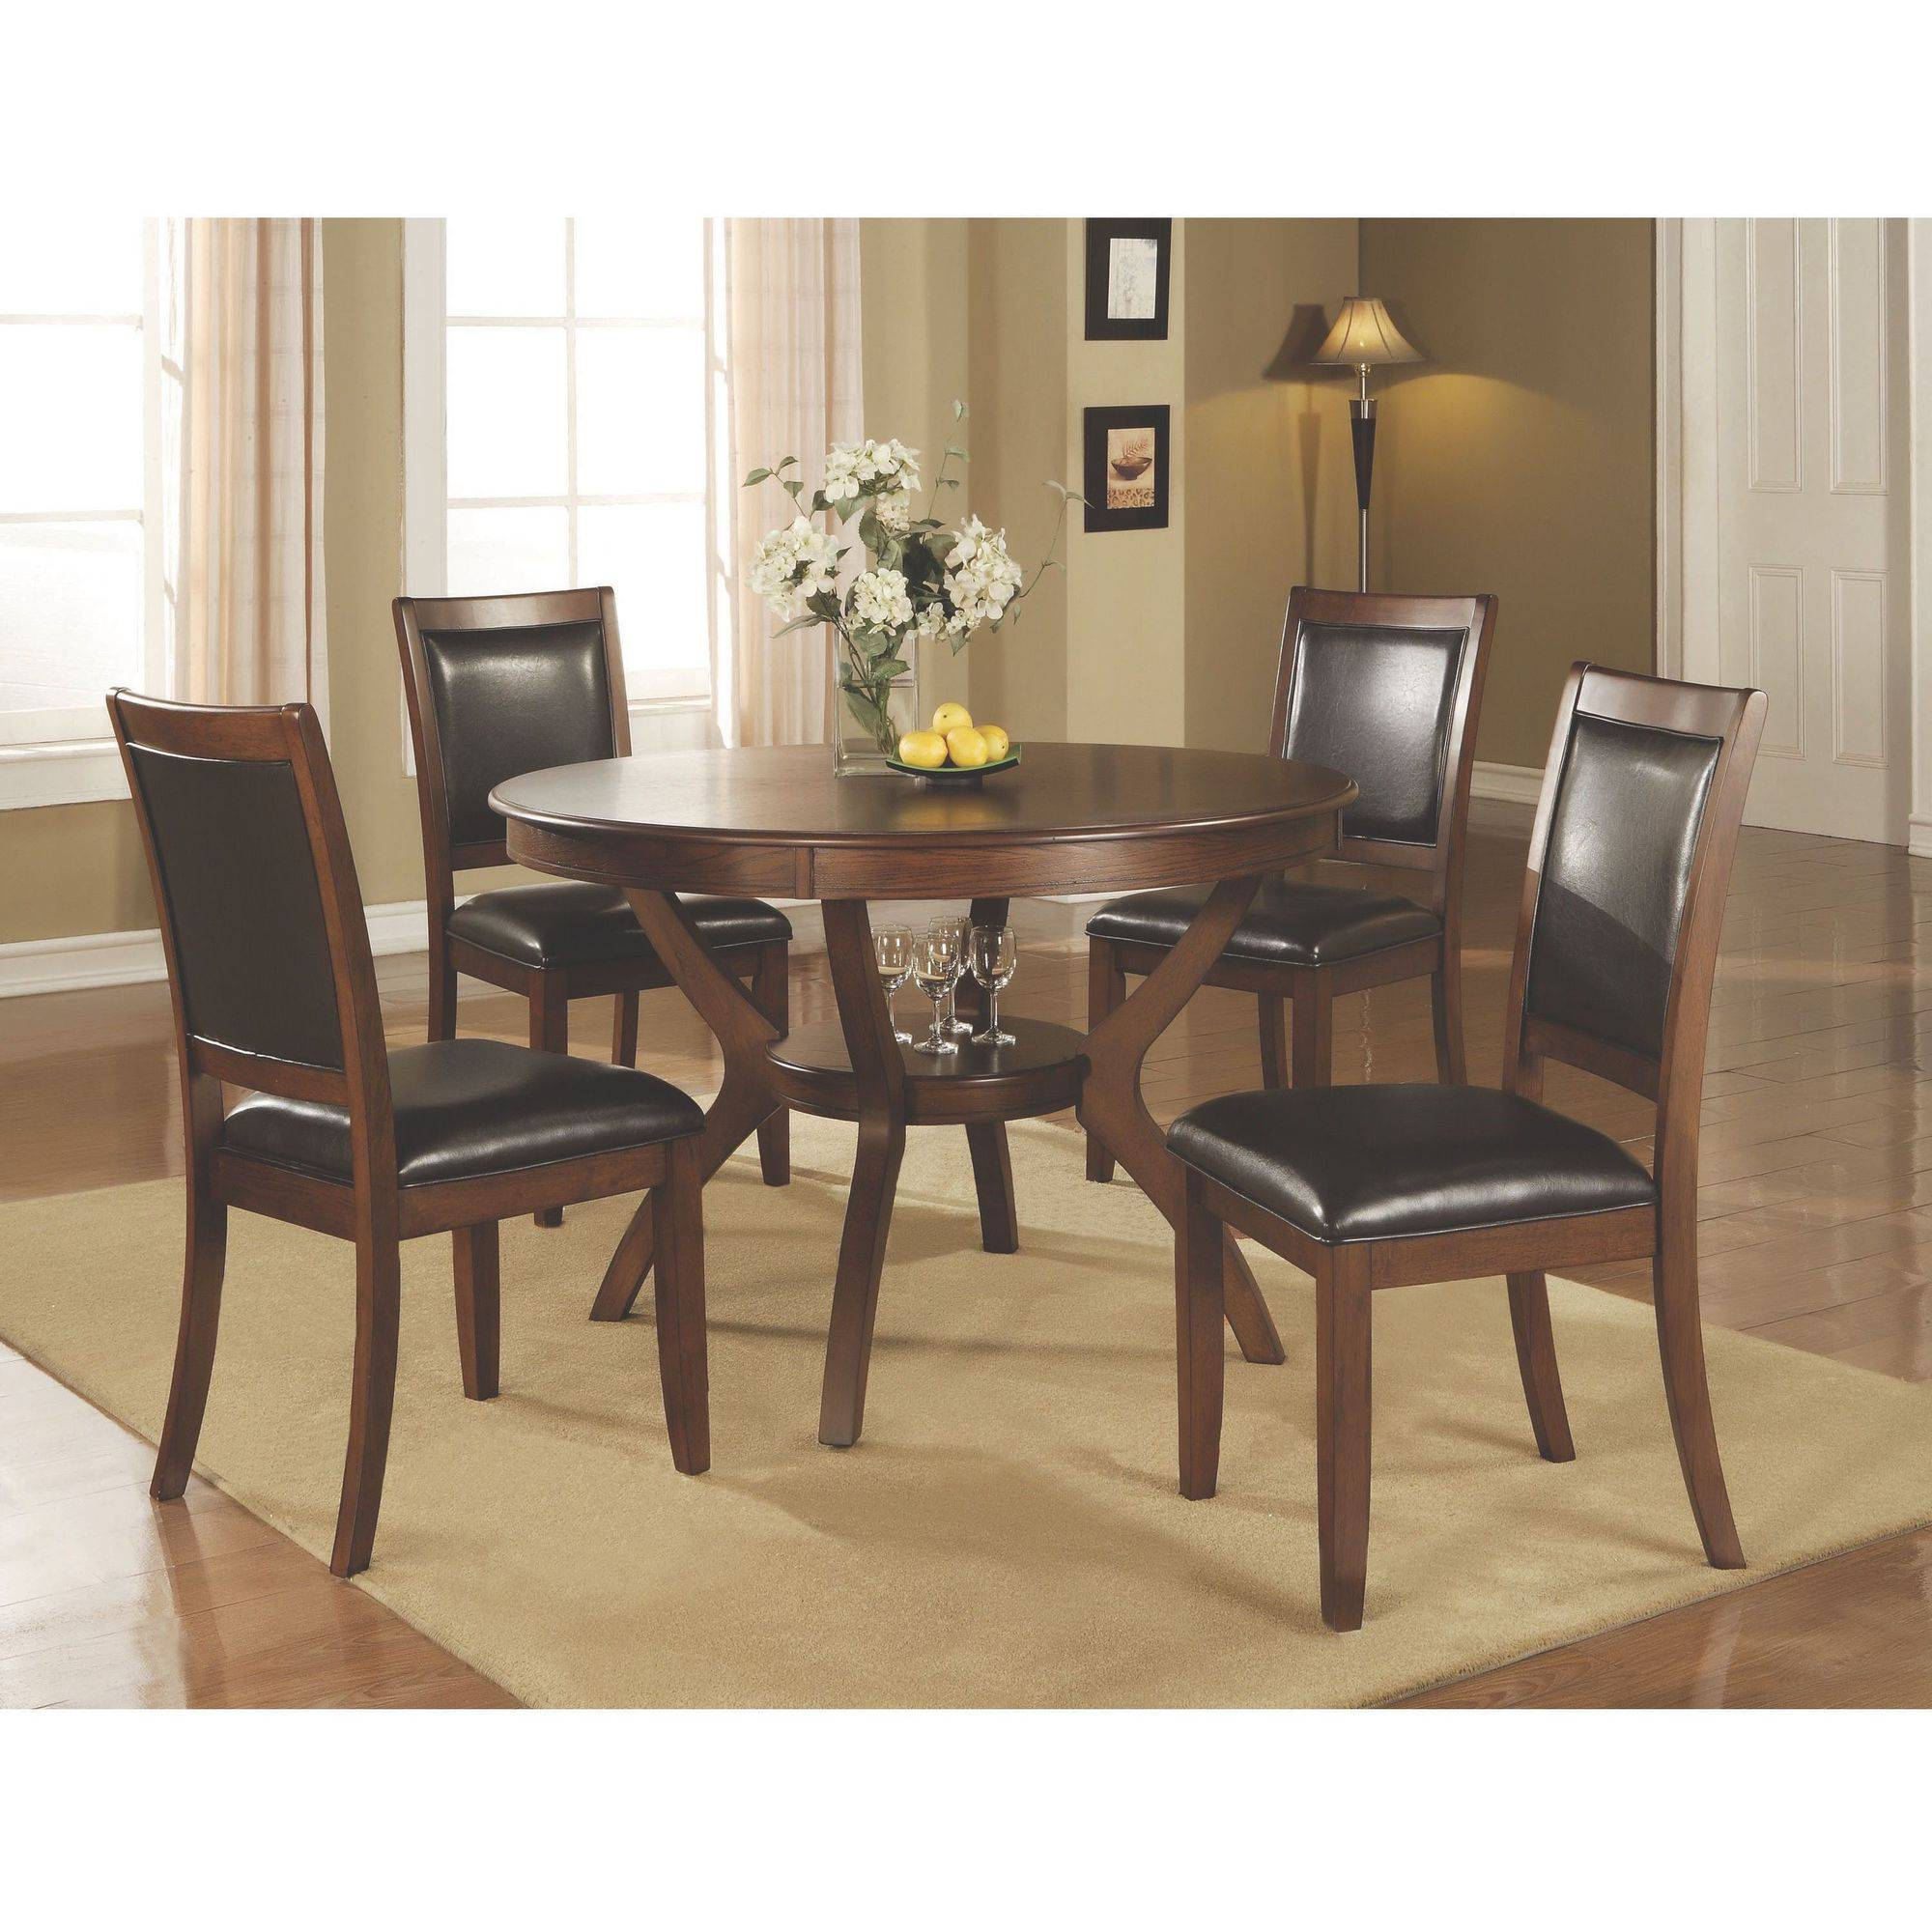 "Coaster pany 48"" Round Nelms Dining Table Deep Brown Walmart"